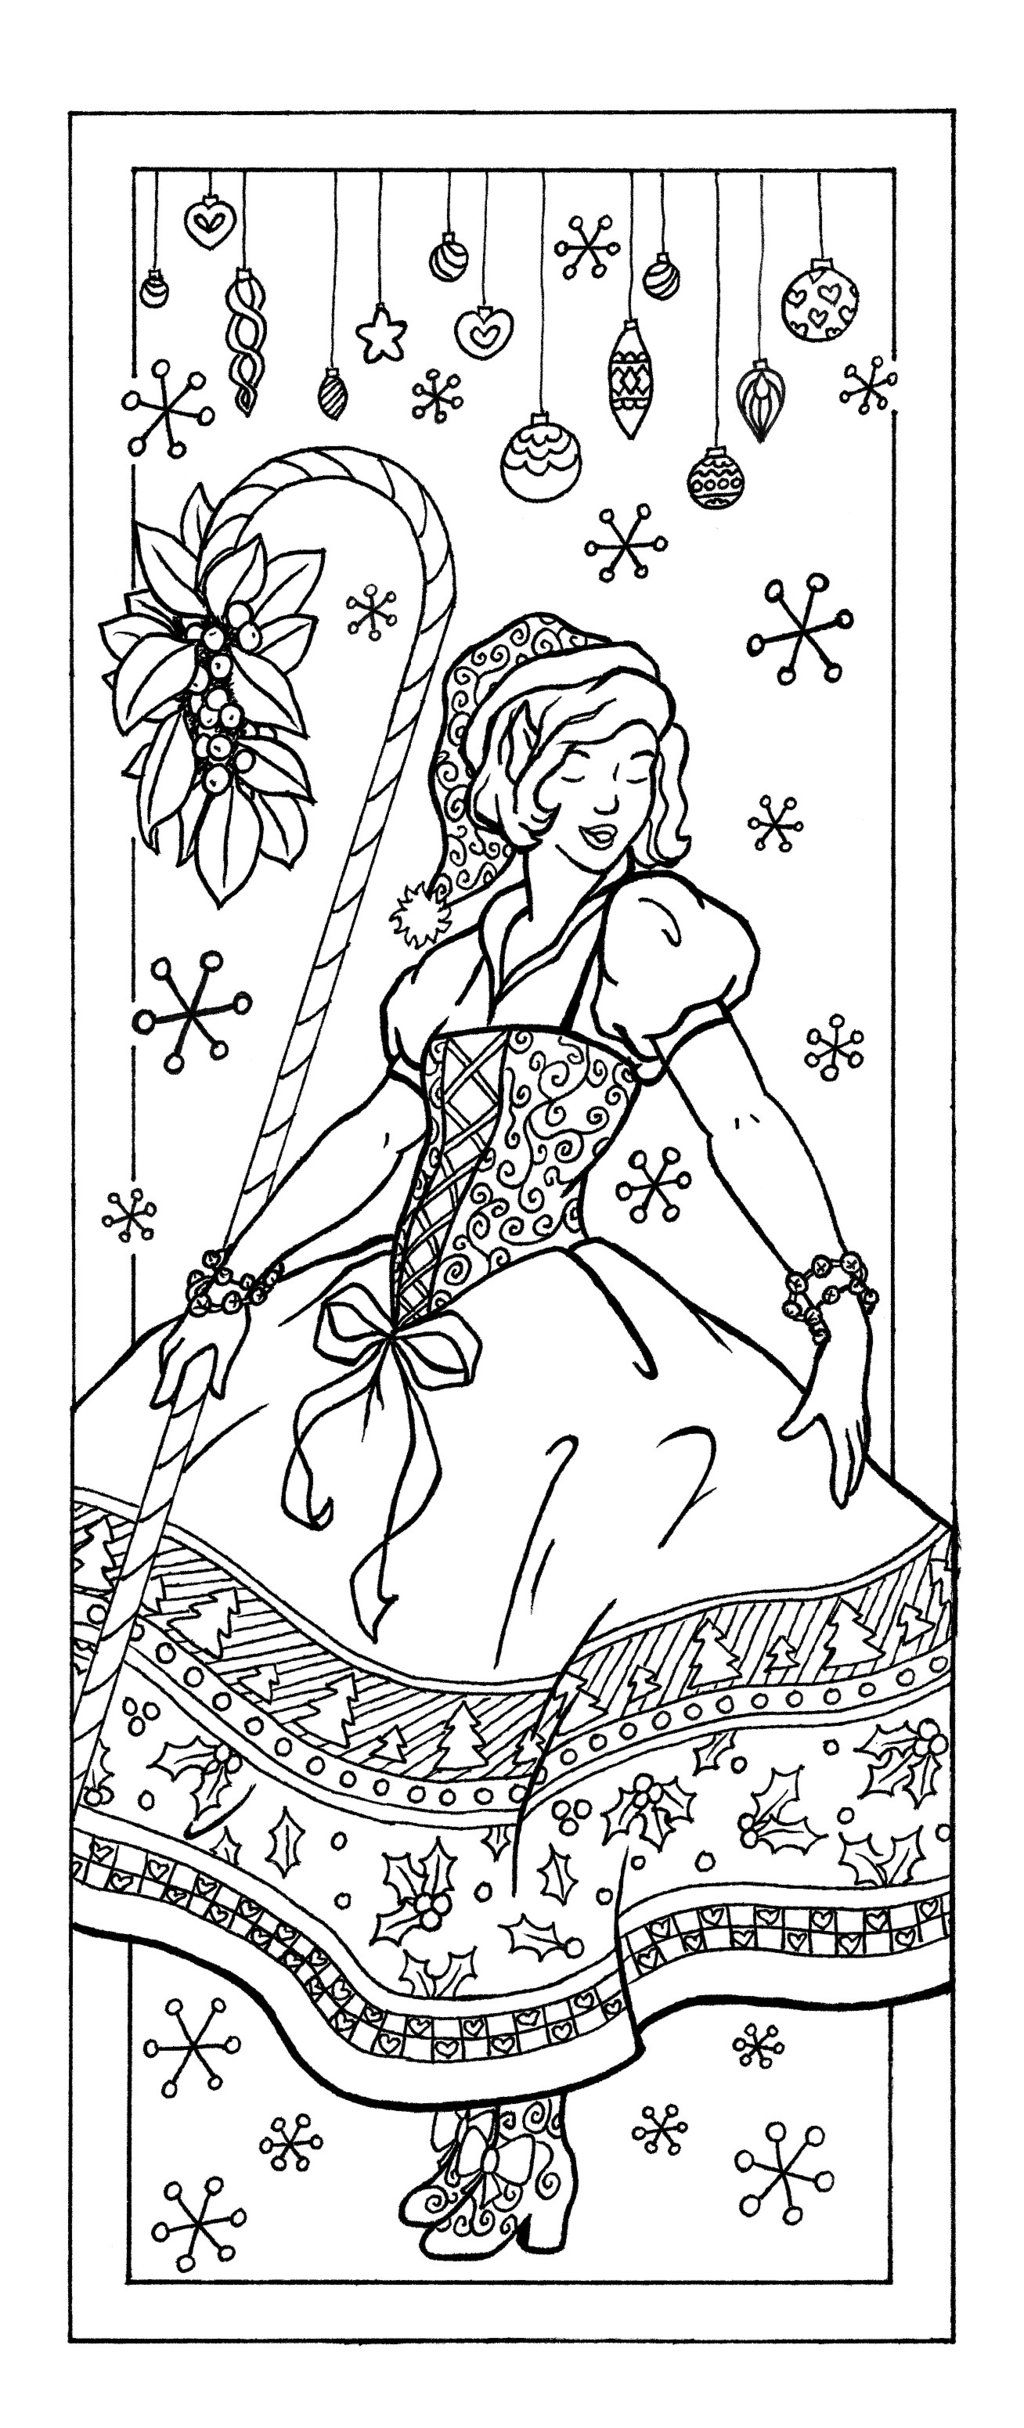 Christmas Coloring Pages Big With Elf Page Bookmark Fits One Half Sheet Of Paper